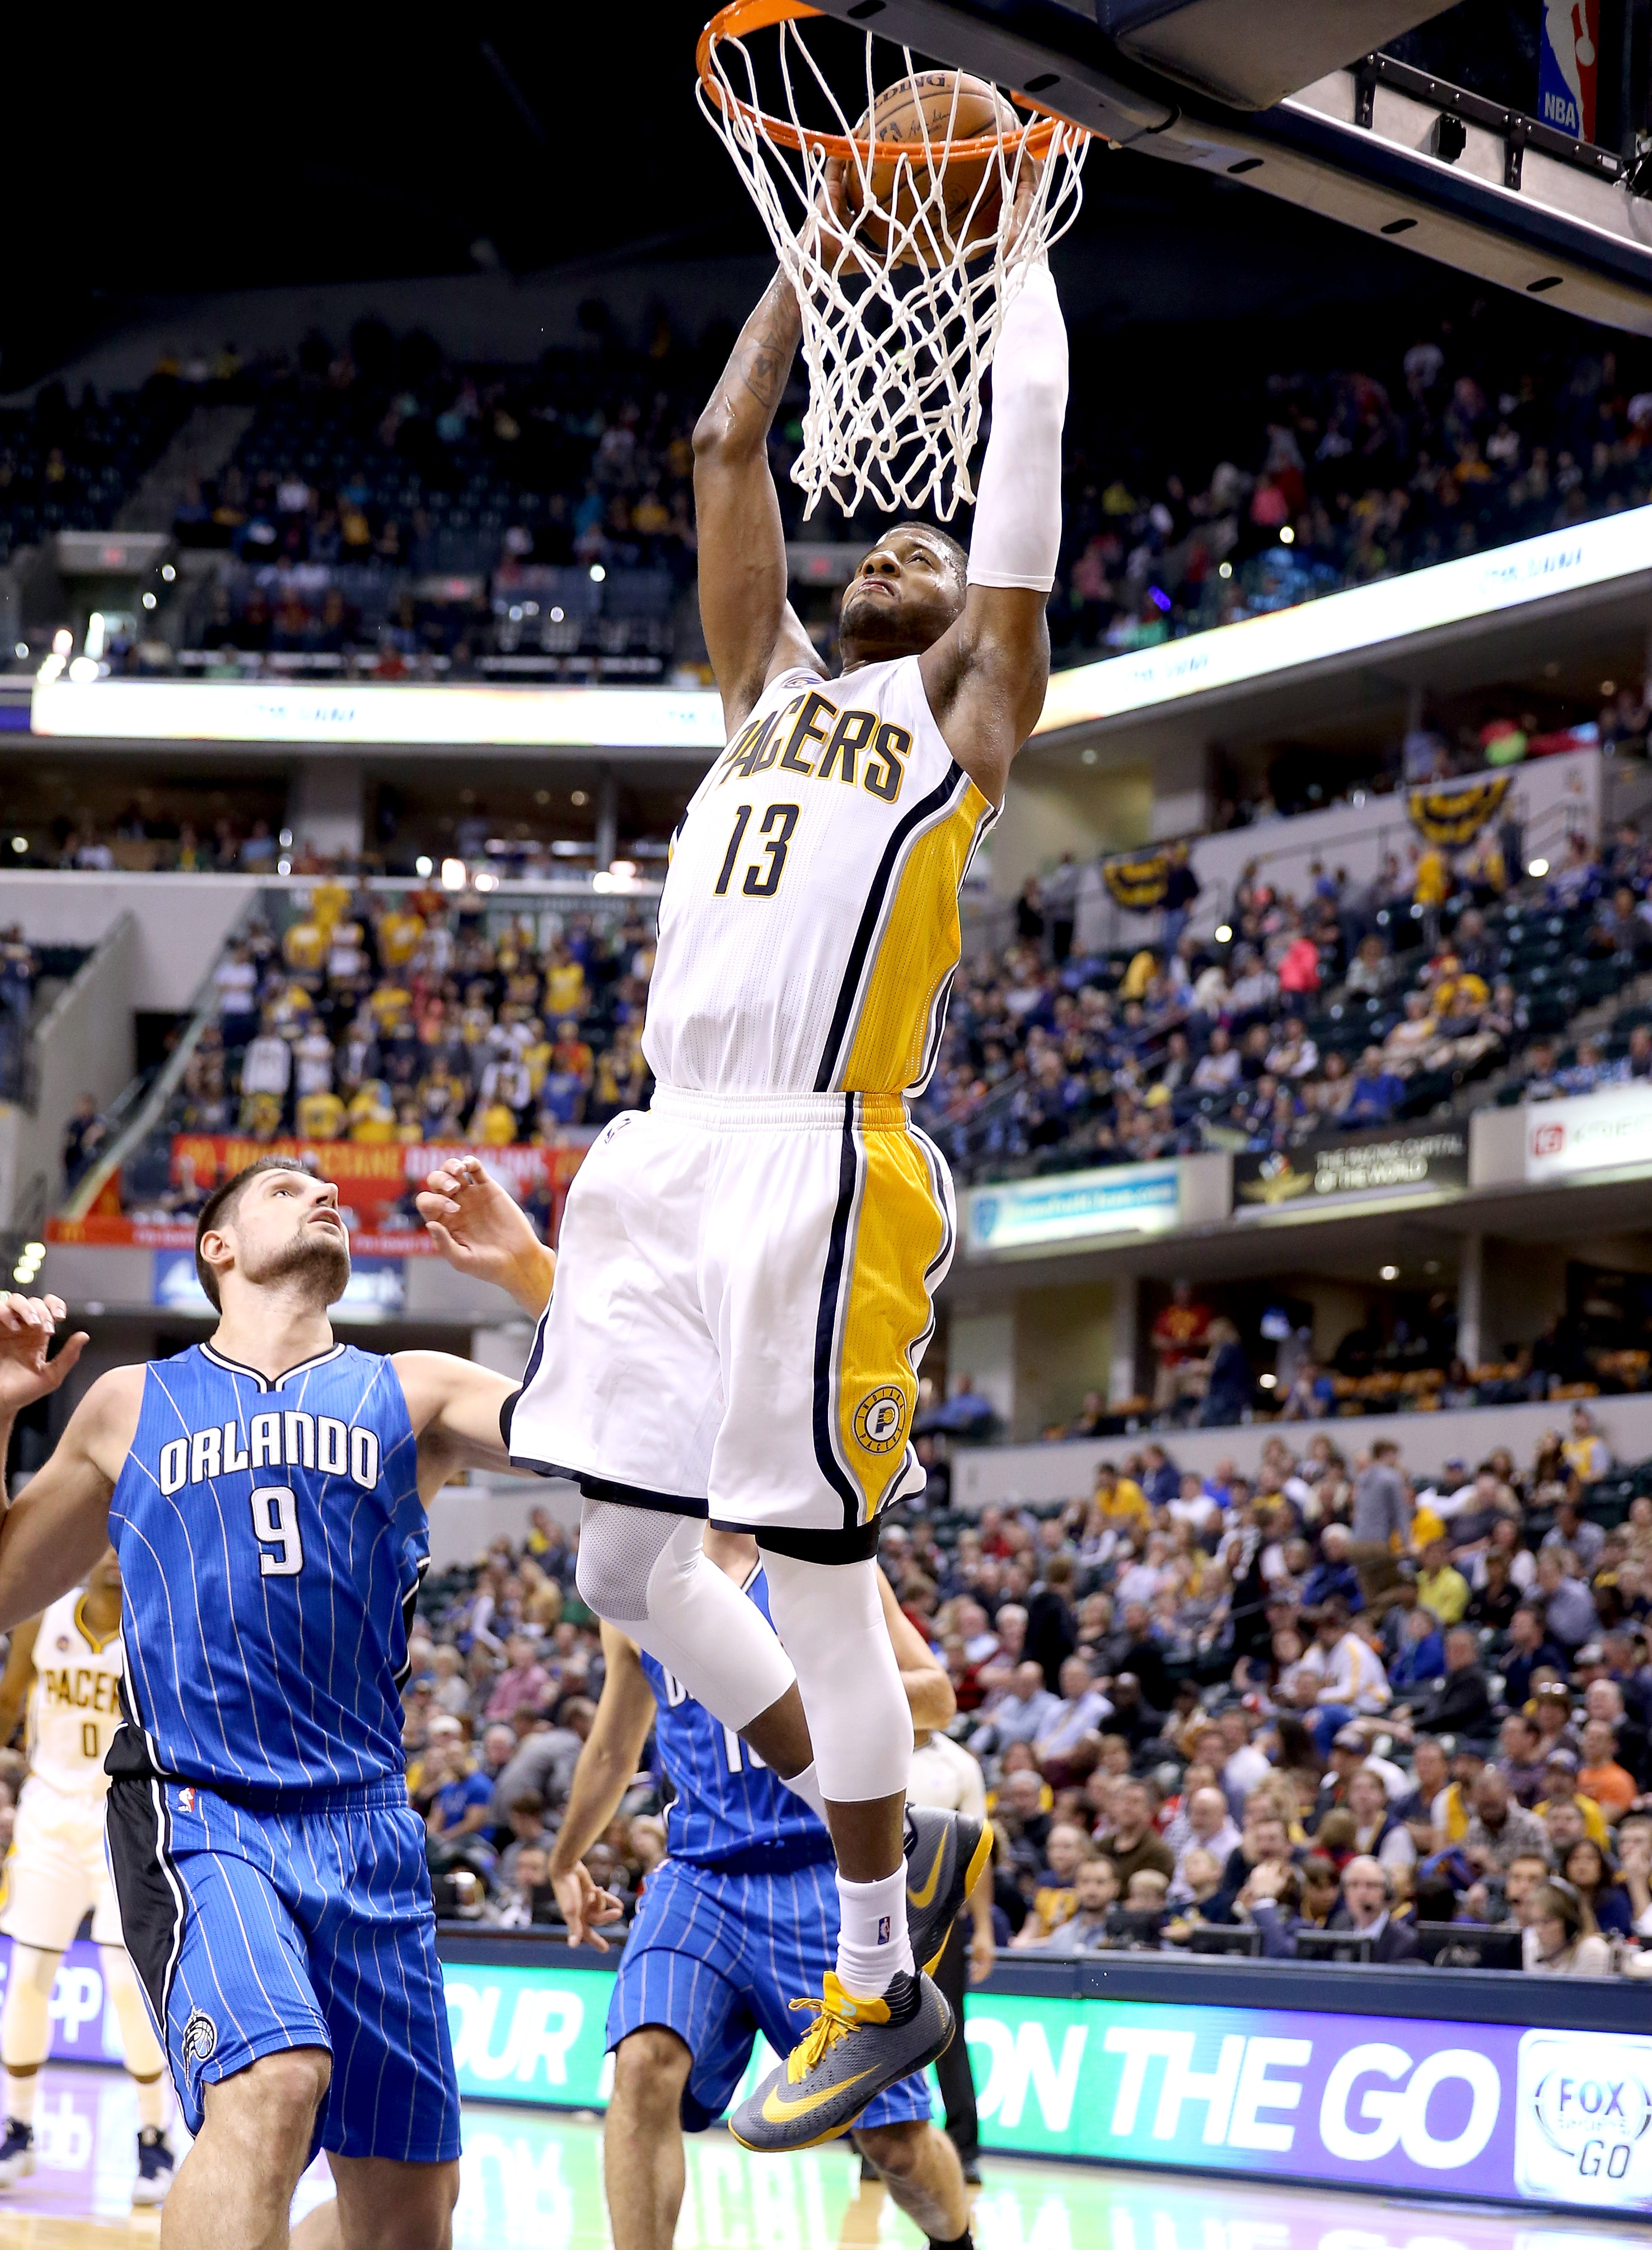 INDIANAPOLIS, IN - MARCH 31:  Paul George #13 of the Indiana Pacers shoots the ball during the game against the  Orlando Magic at Bankers Life Fieldhouse on March 31, 2016 in Indianapolis, Indiana.  (Photo by Andy Lyons/Getty Images)